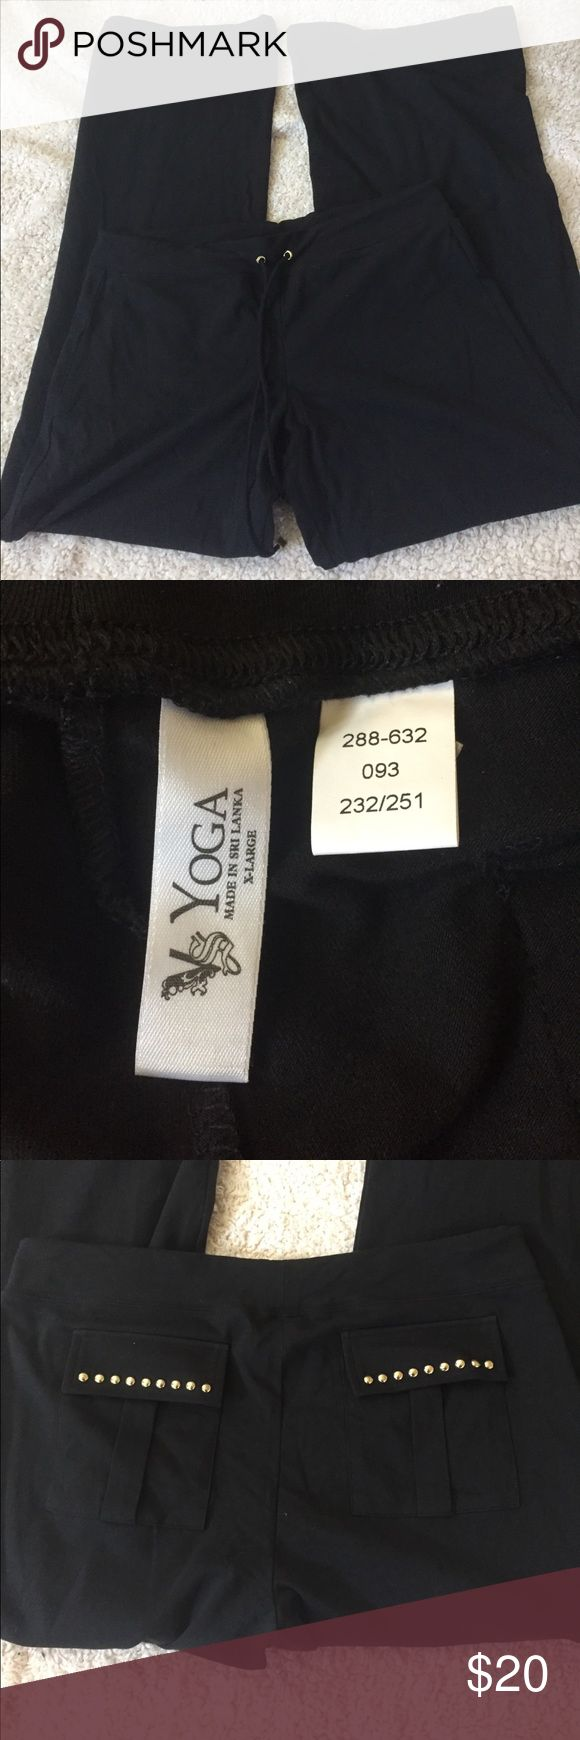 Victoria's Secret wide leg yoga pants Victoria's Secret black wide leg yoga pants. Size XL. Never worn. Cute embellished pockets in the back. Draw string waist band. Victoria's Secret Pants Wide Leg